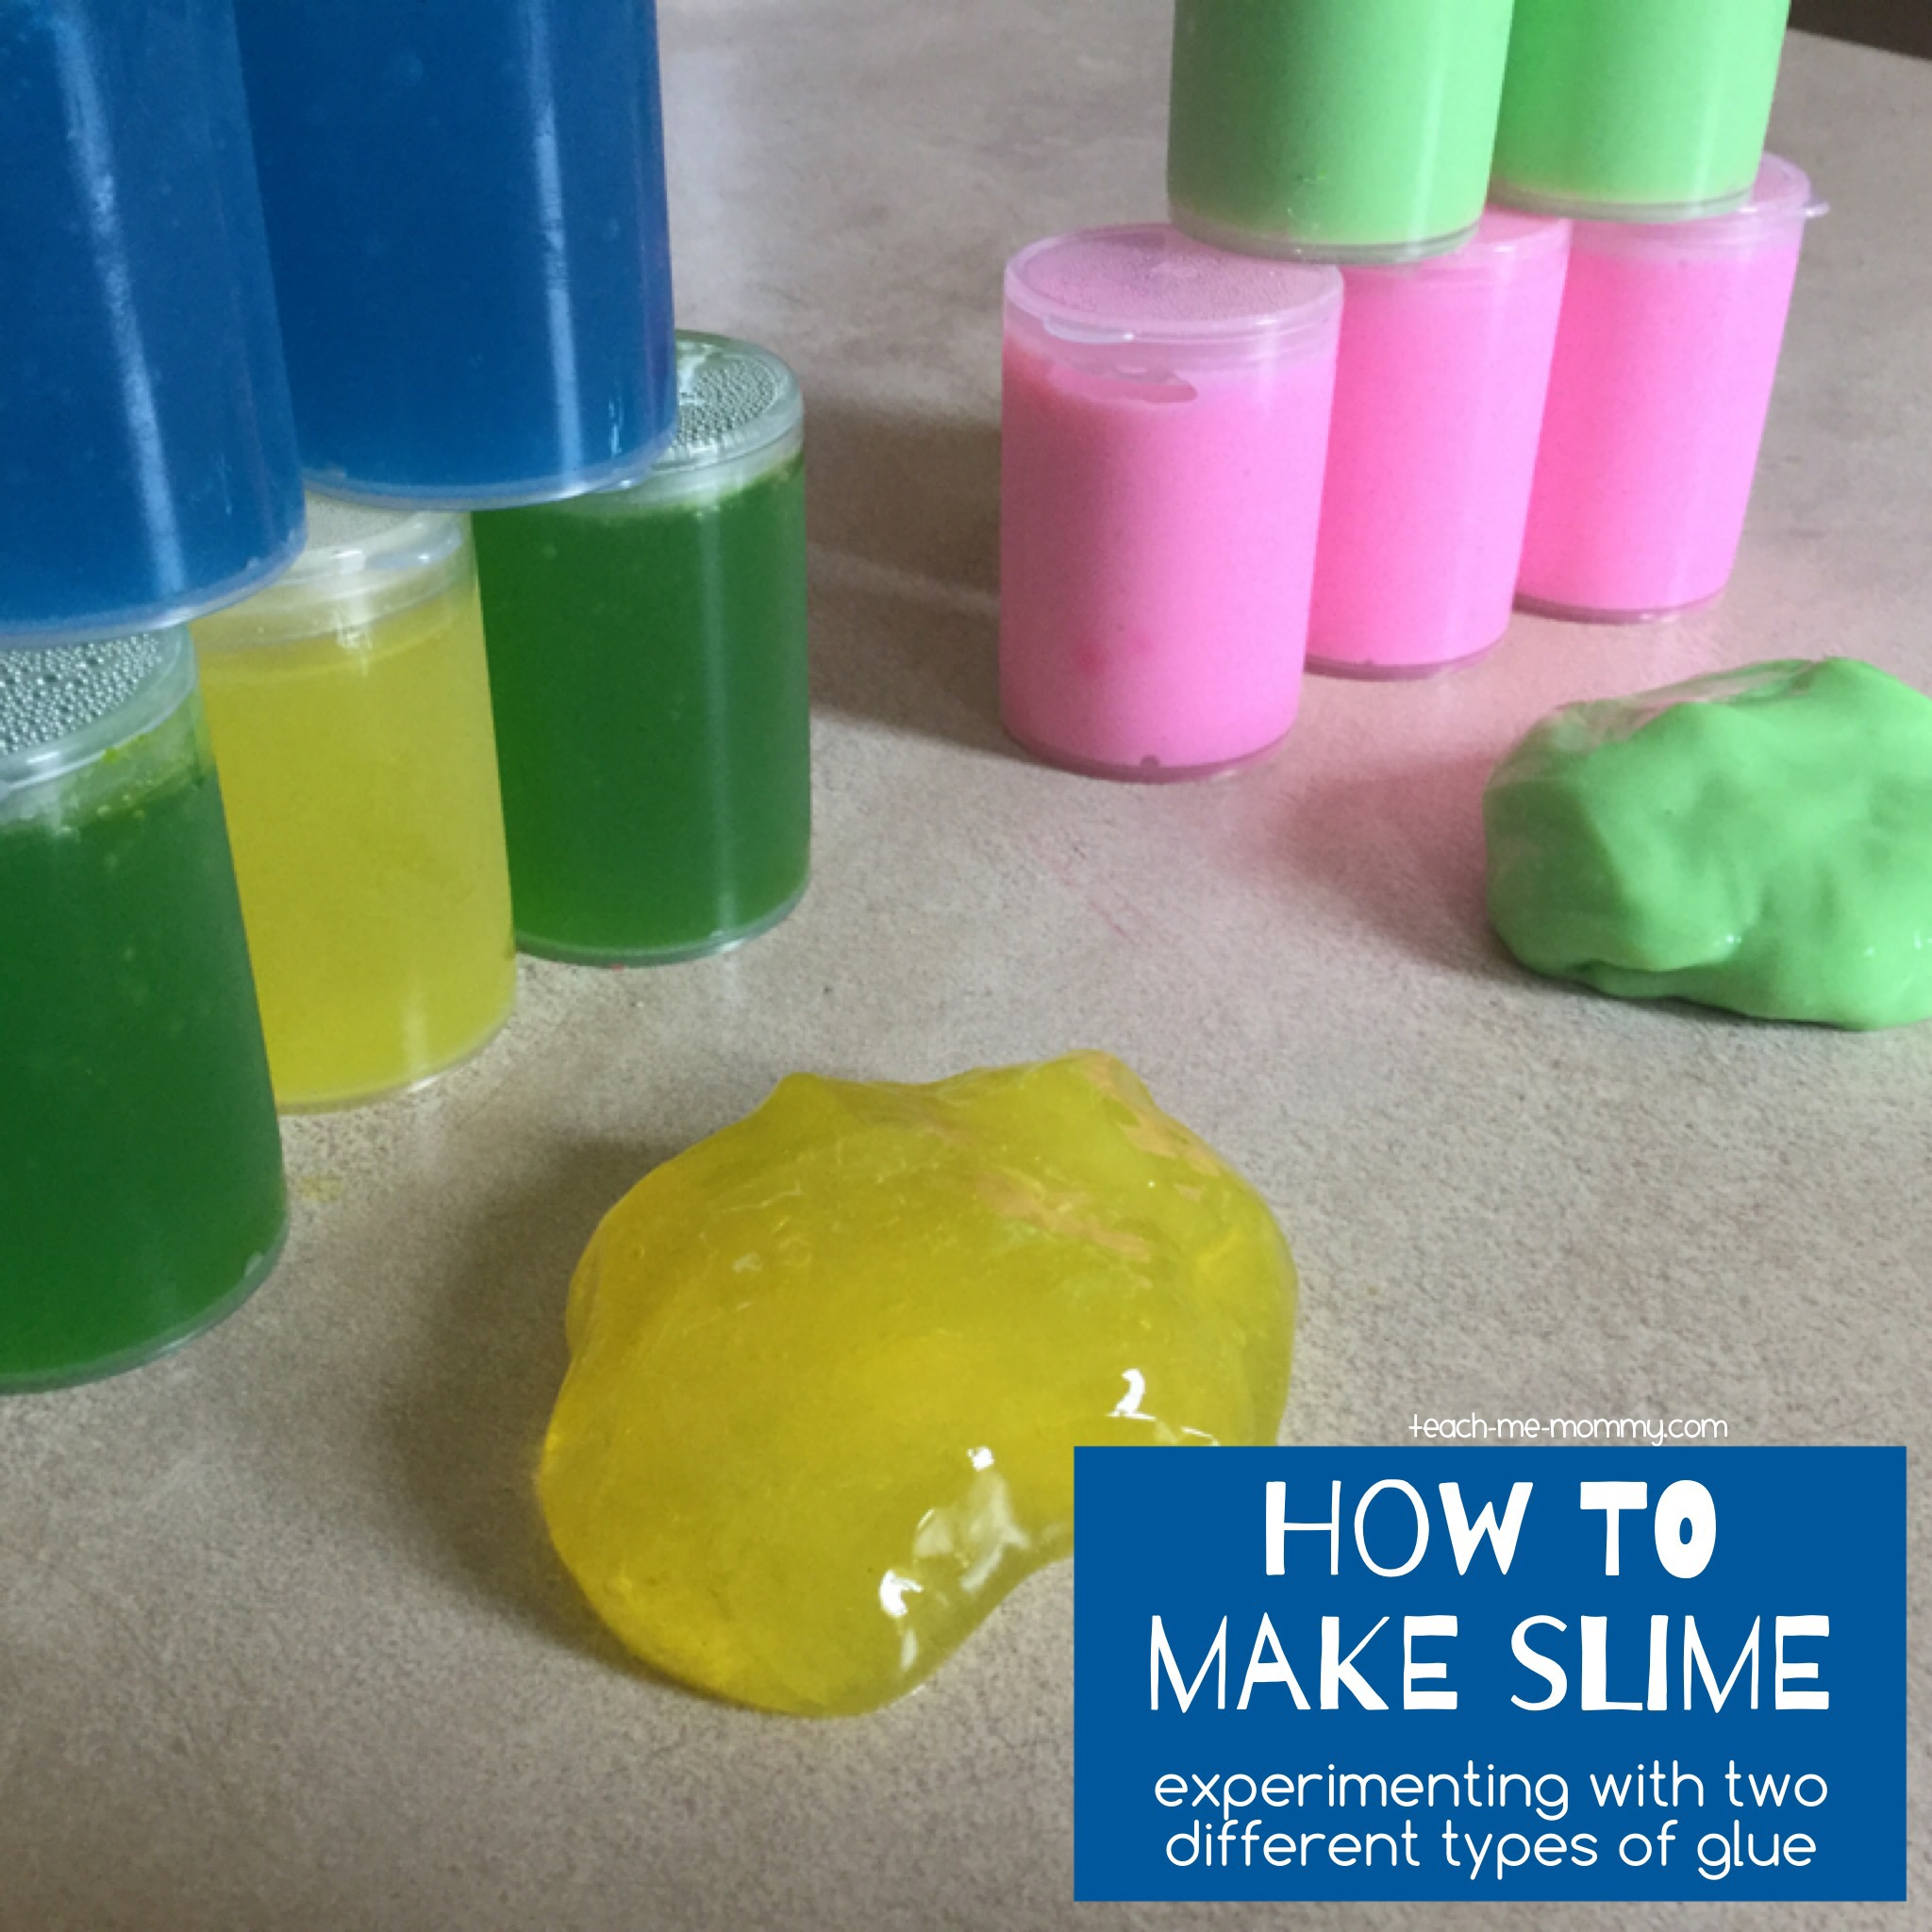 How To Make A Two Story Living Room Cozy: How To Make Slime